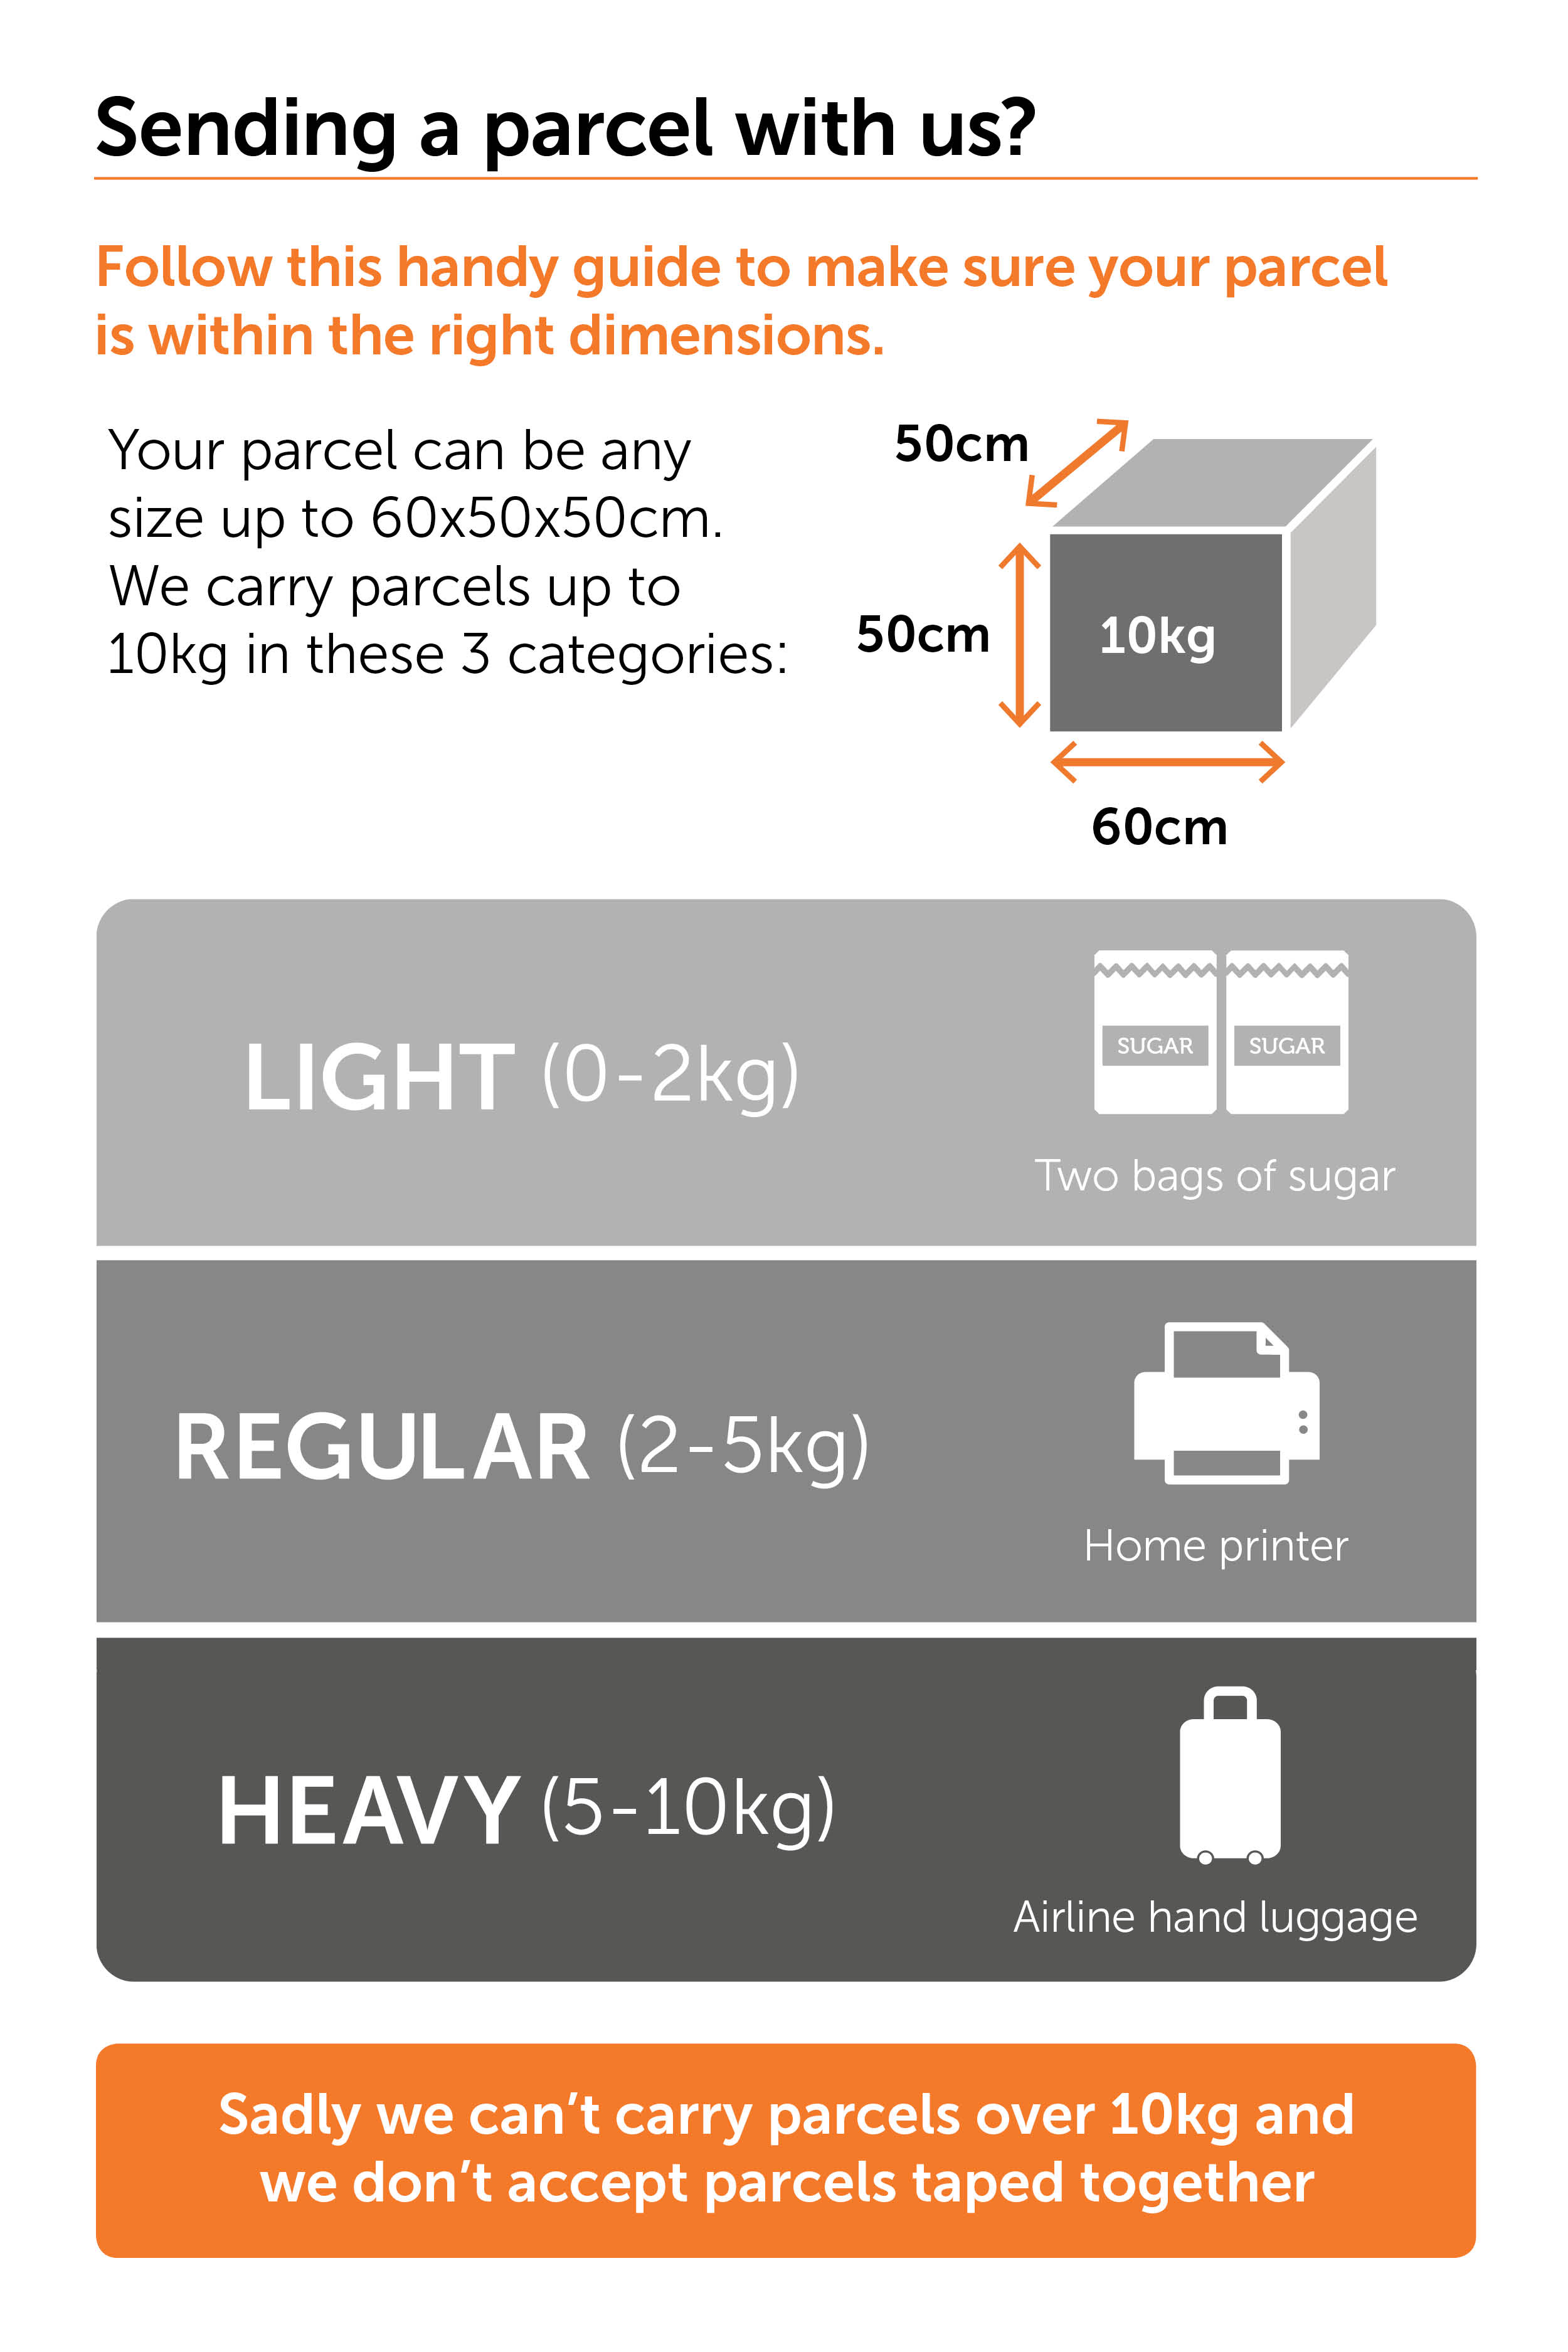 Collectplus parcel dimensions aw